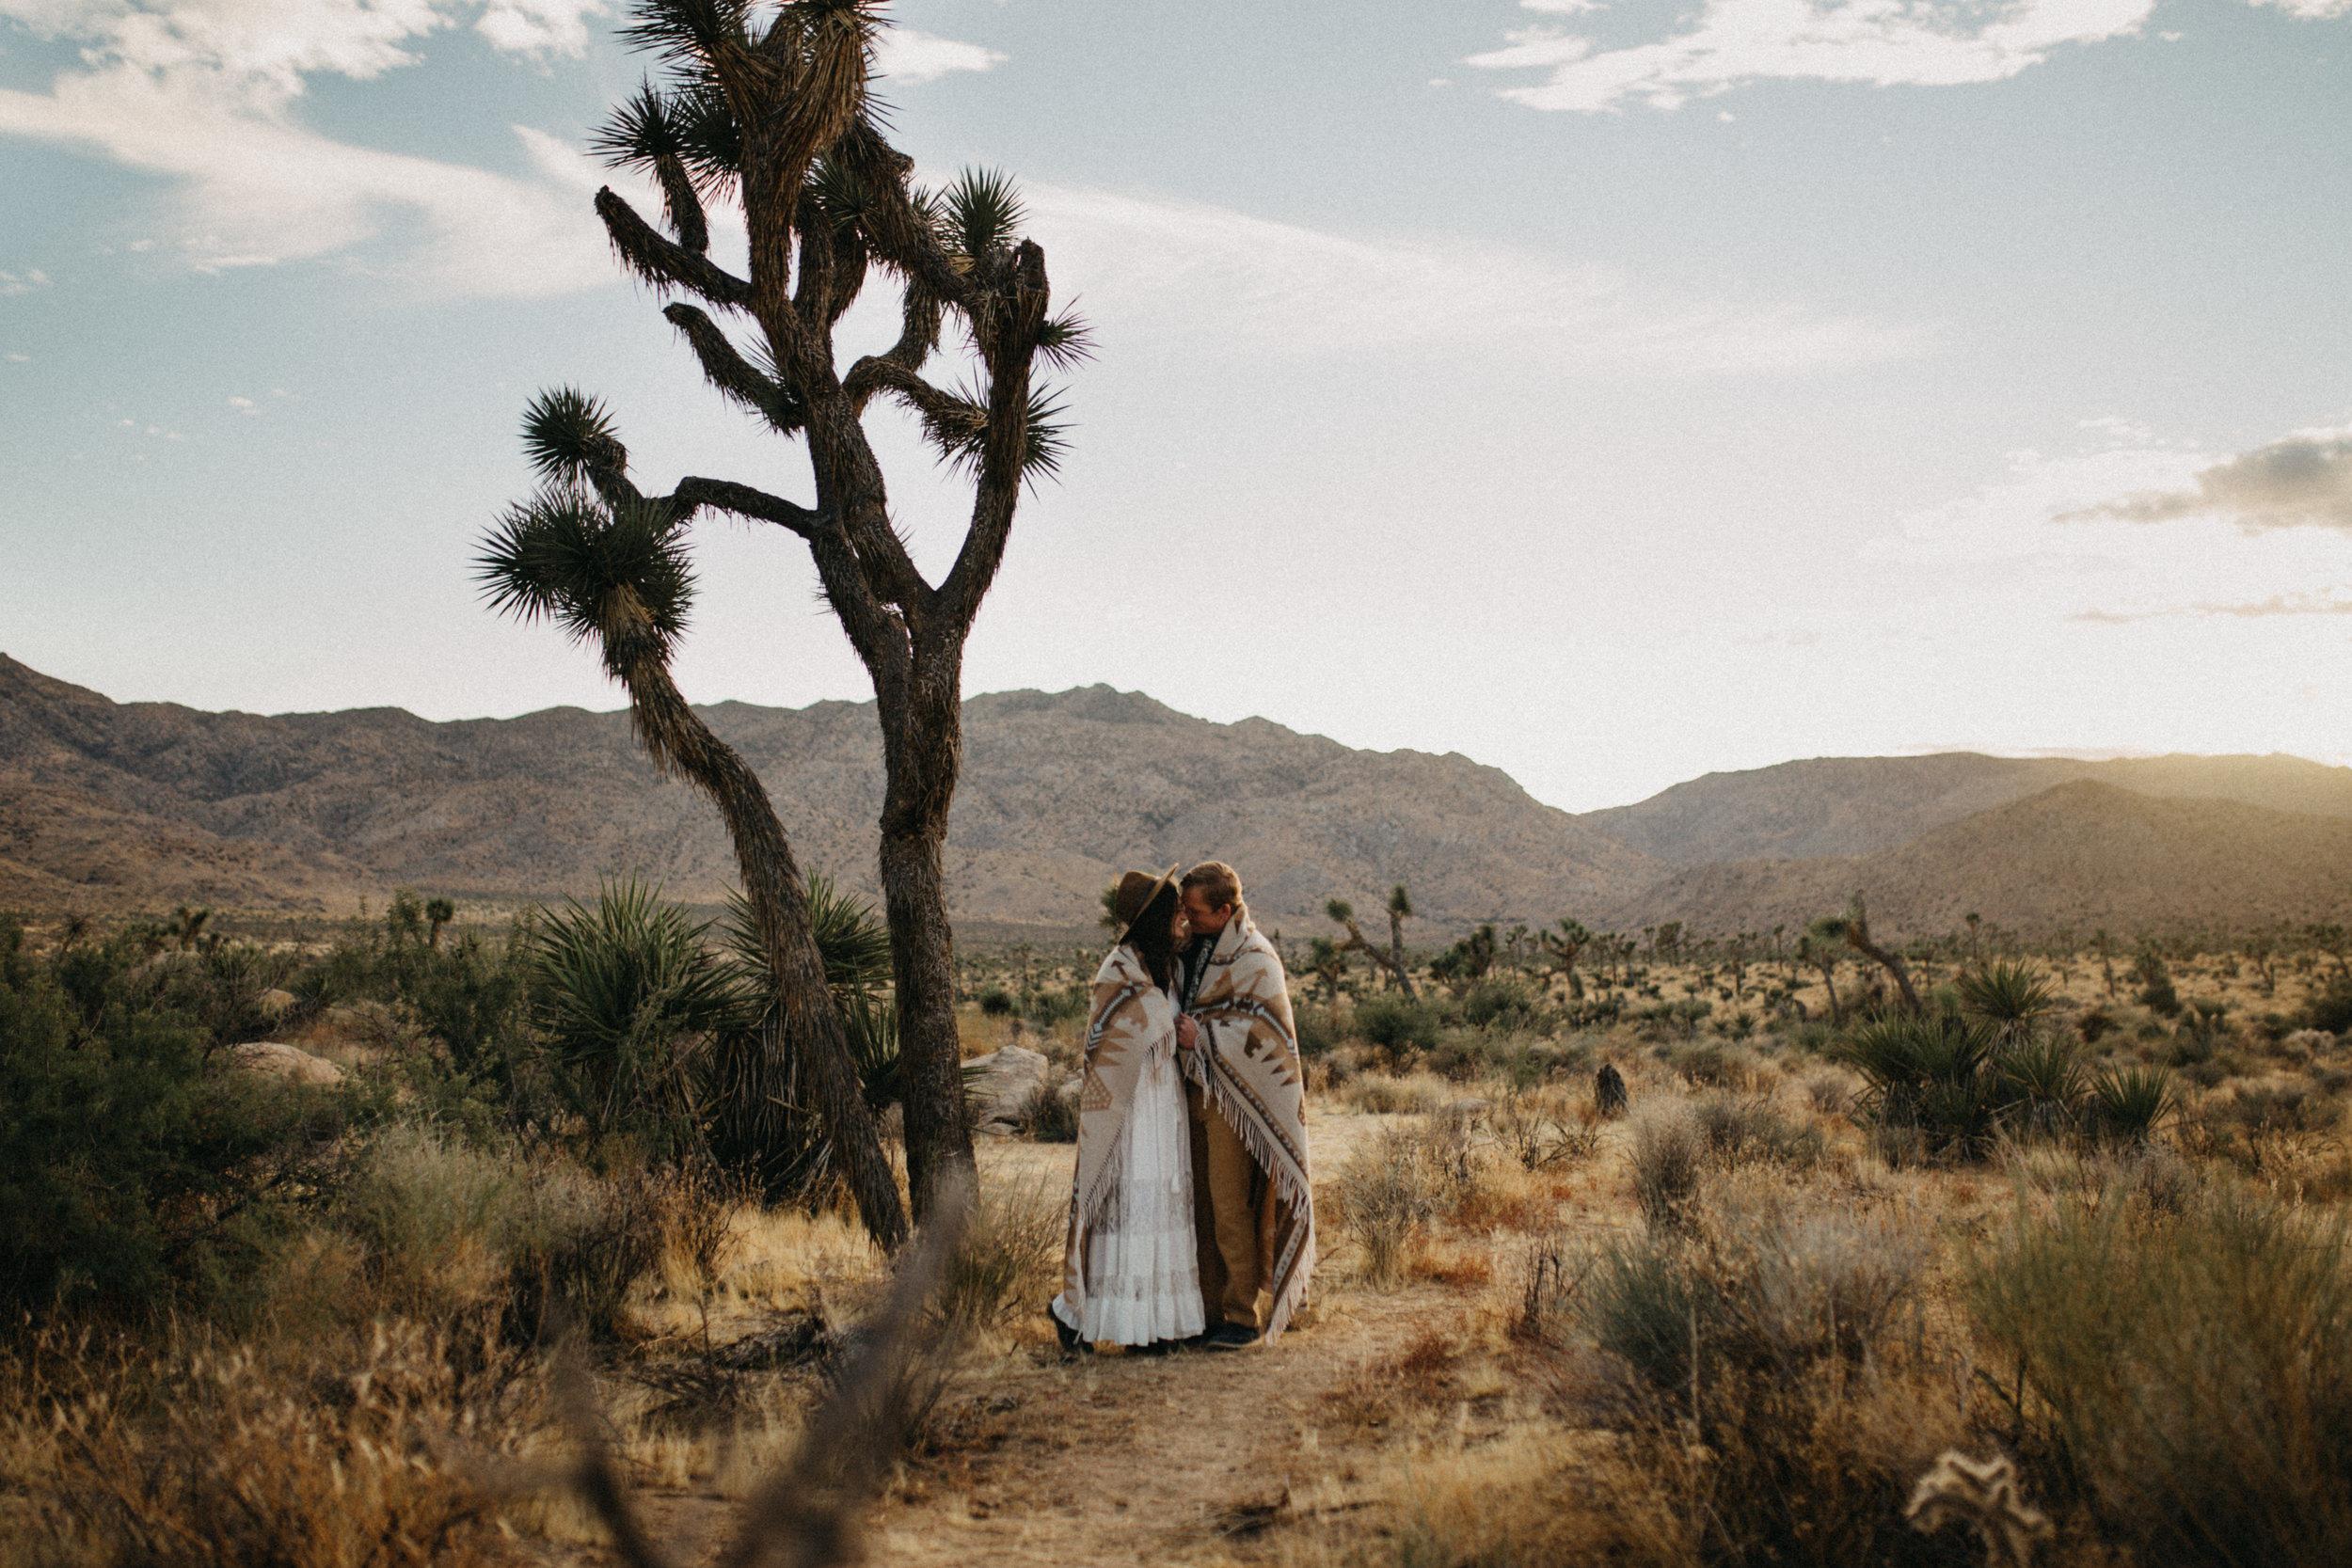 Joshua Tree National Park Adventure Couples Session Photographer Payton Marie Photography-22.jpg